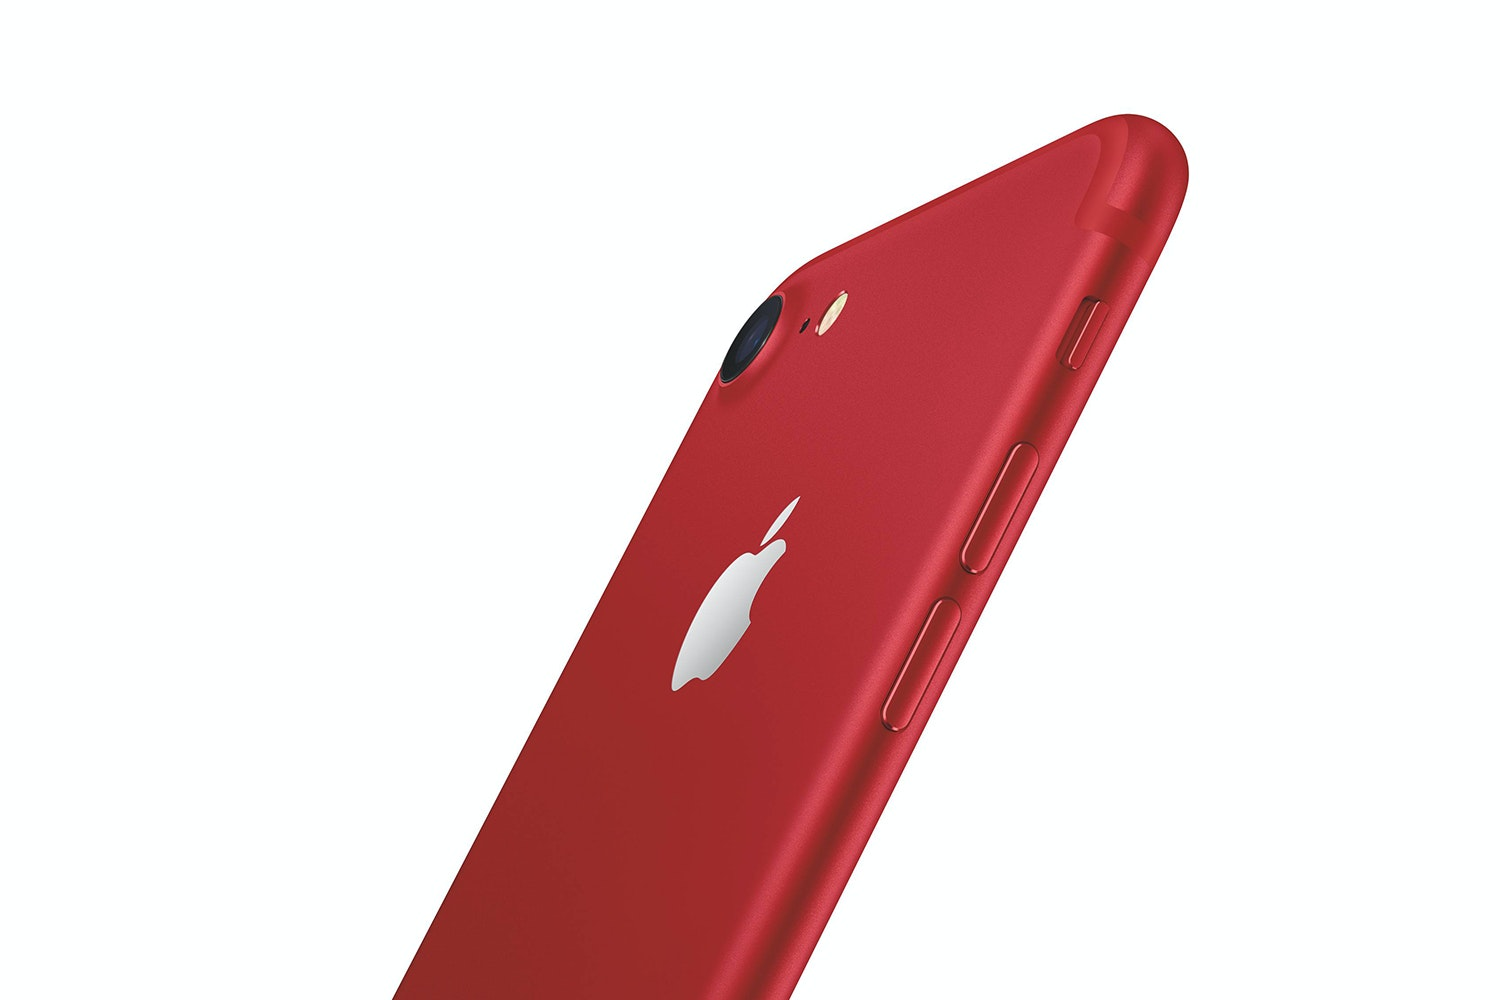 iPhone 7 (PRODUCT)RED Special Edition | 128GB